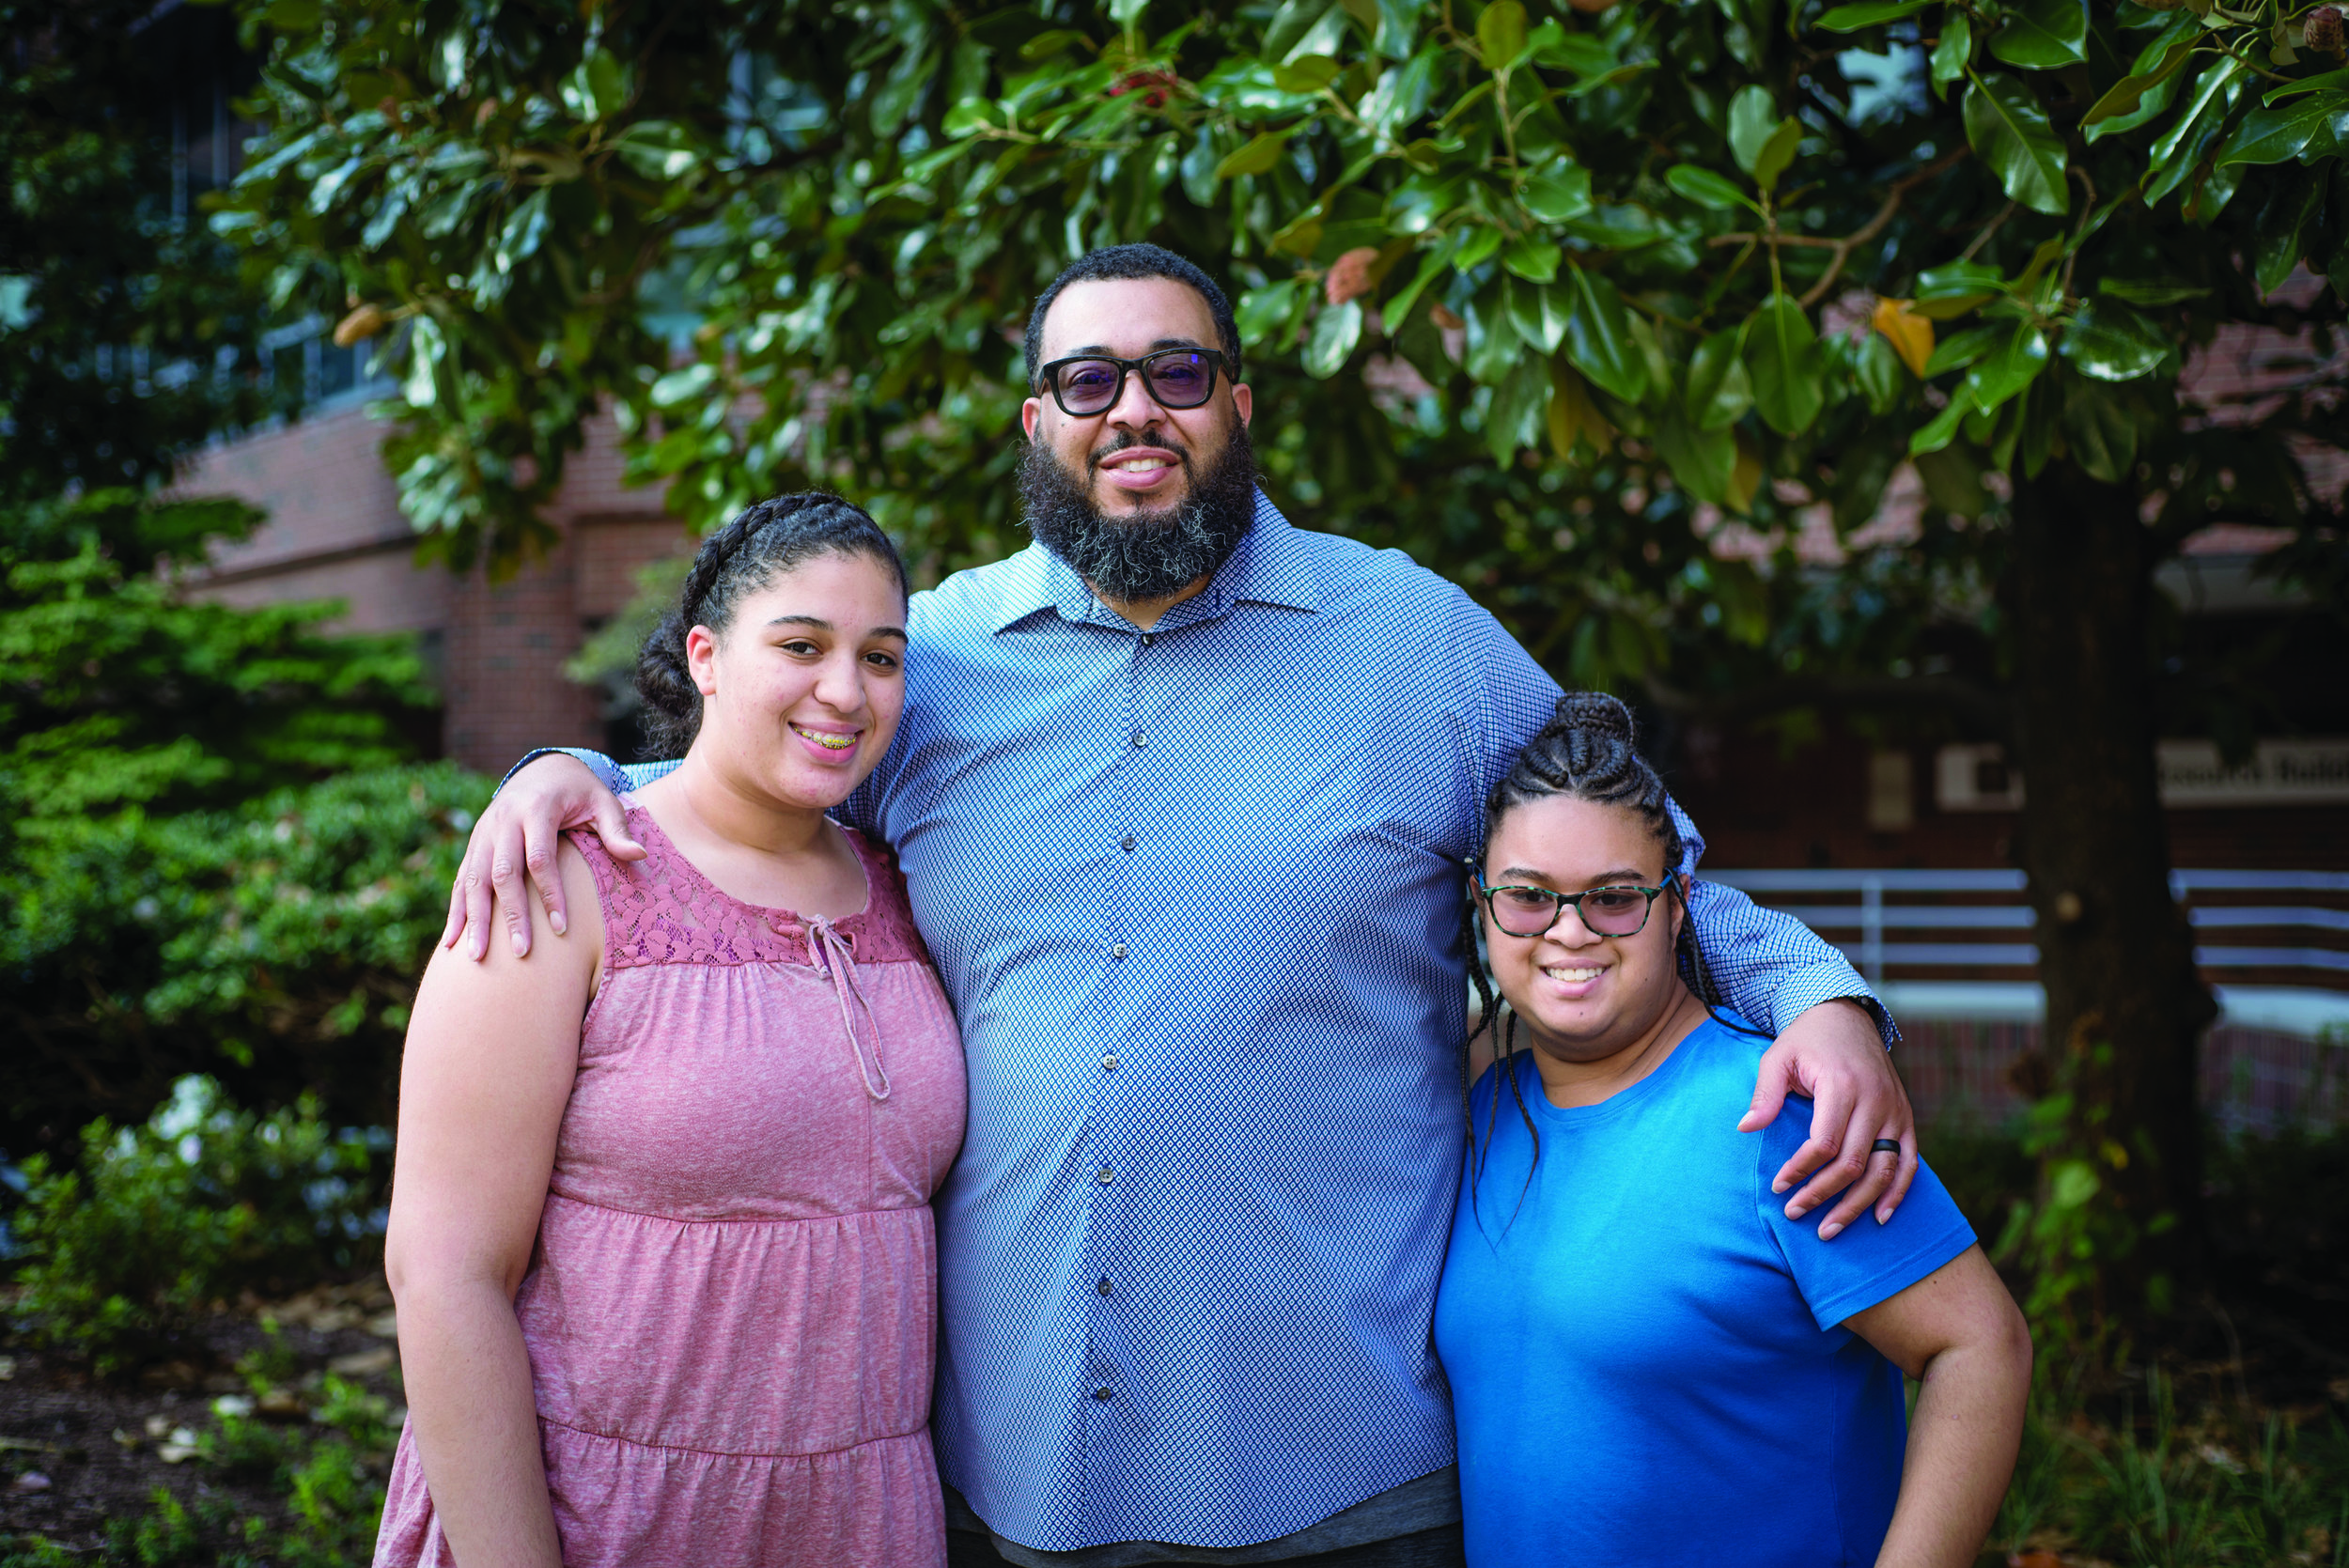 Maurice McAllister - Maurice McAllister's heart was failing him. Being there to raise his teen daughters helped him more easily make the decision to opt for an innovative option in heart transplant in Vanderbilt, and now he's helping educate others.